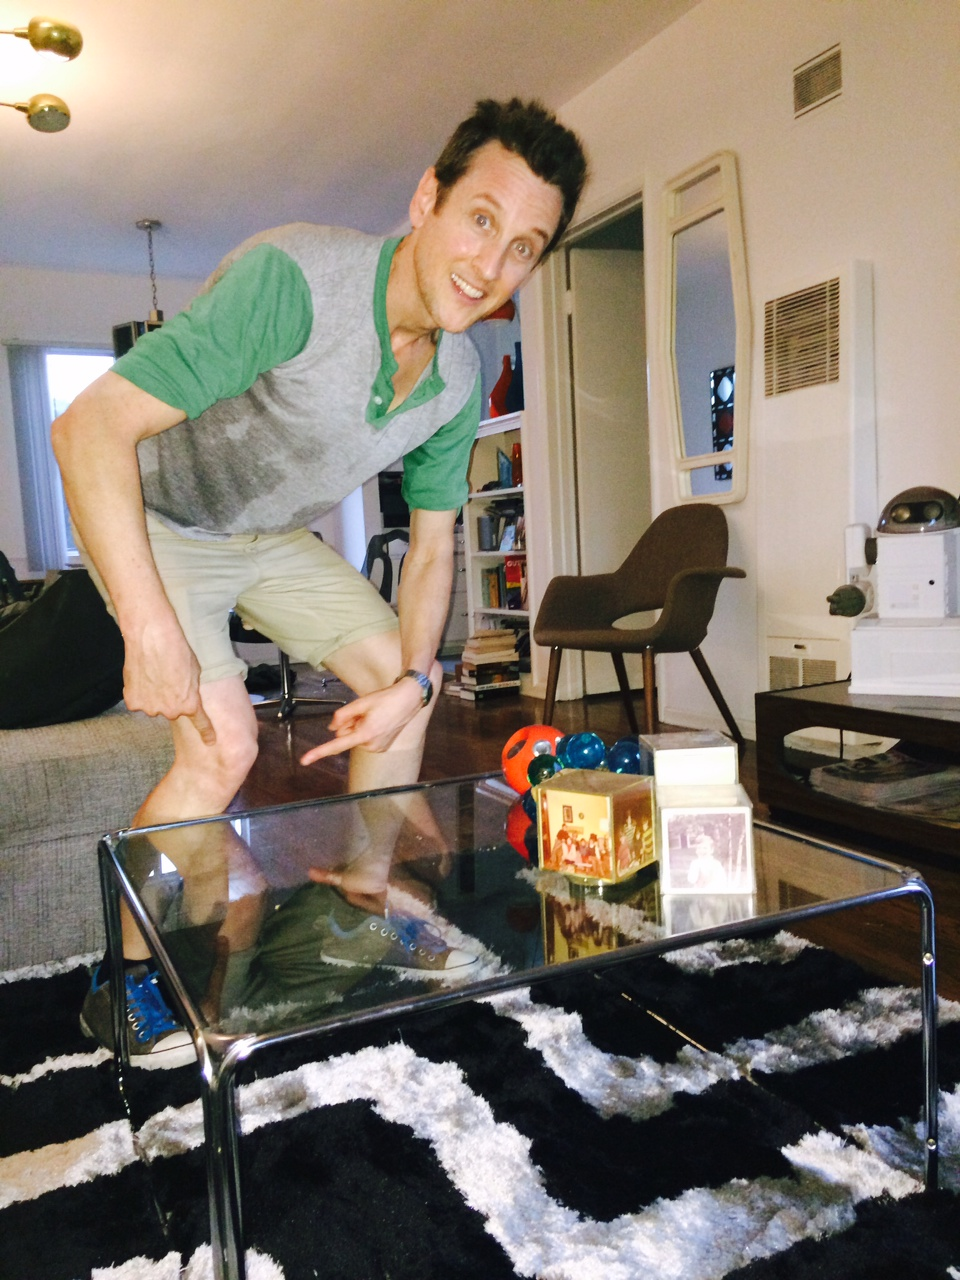 The coffee table from the movie that Liv Tyler bumps her knee on.  jack's not sweating over his movie opening.  He's sweating because it's hot as balls in LA this week!